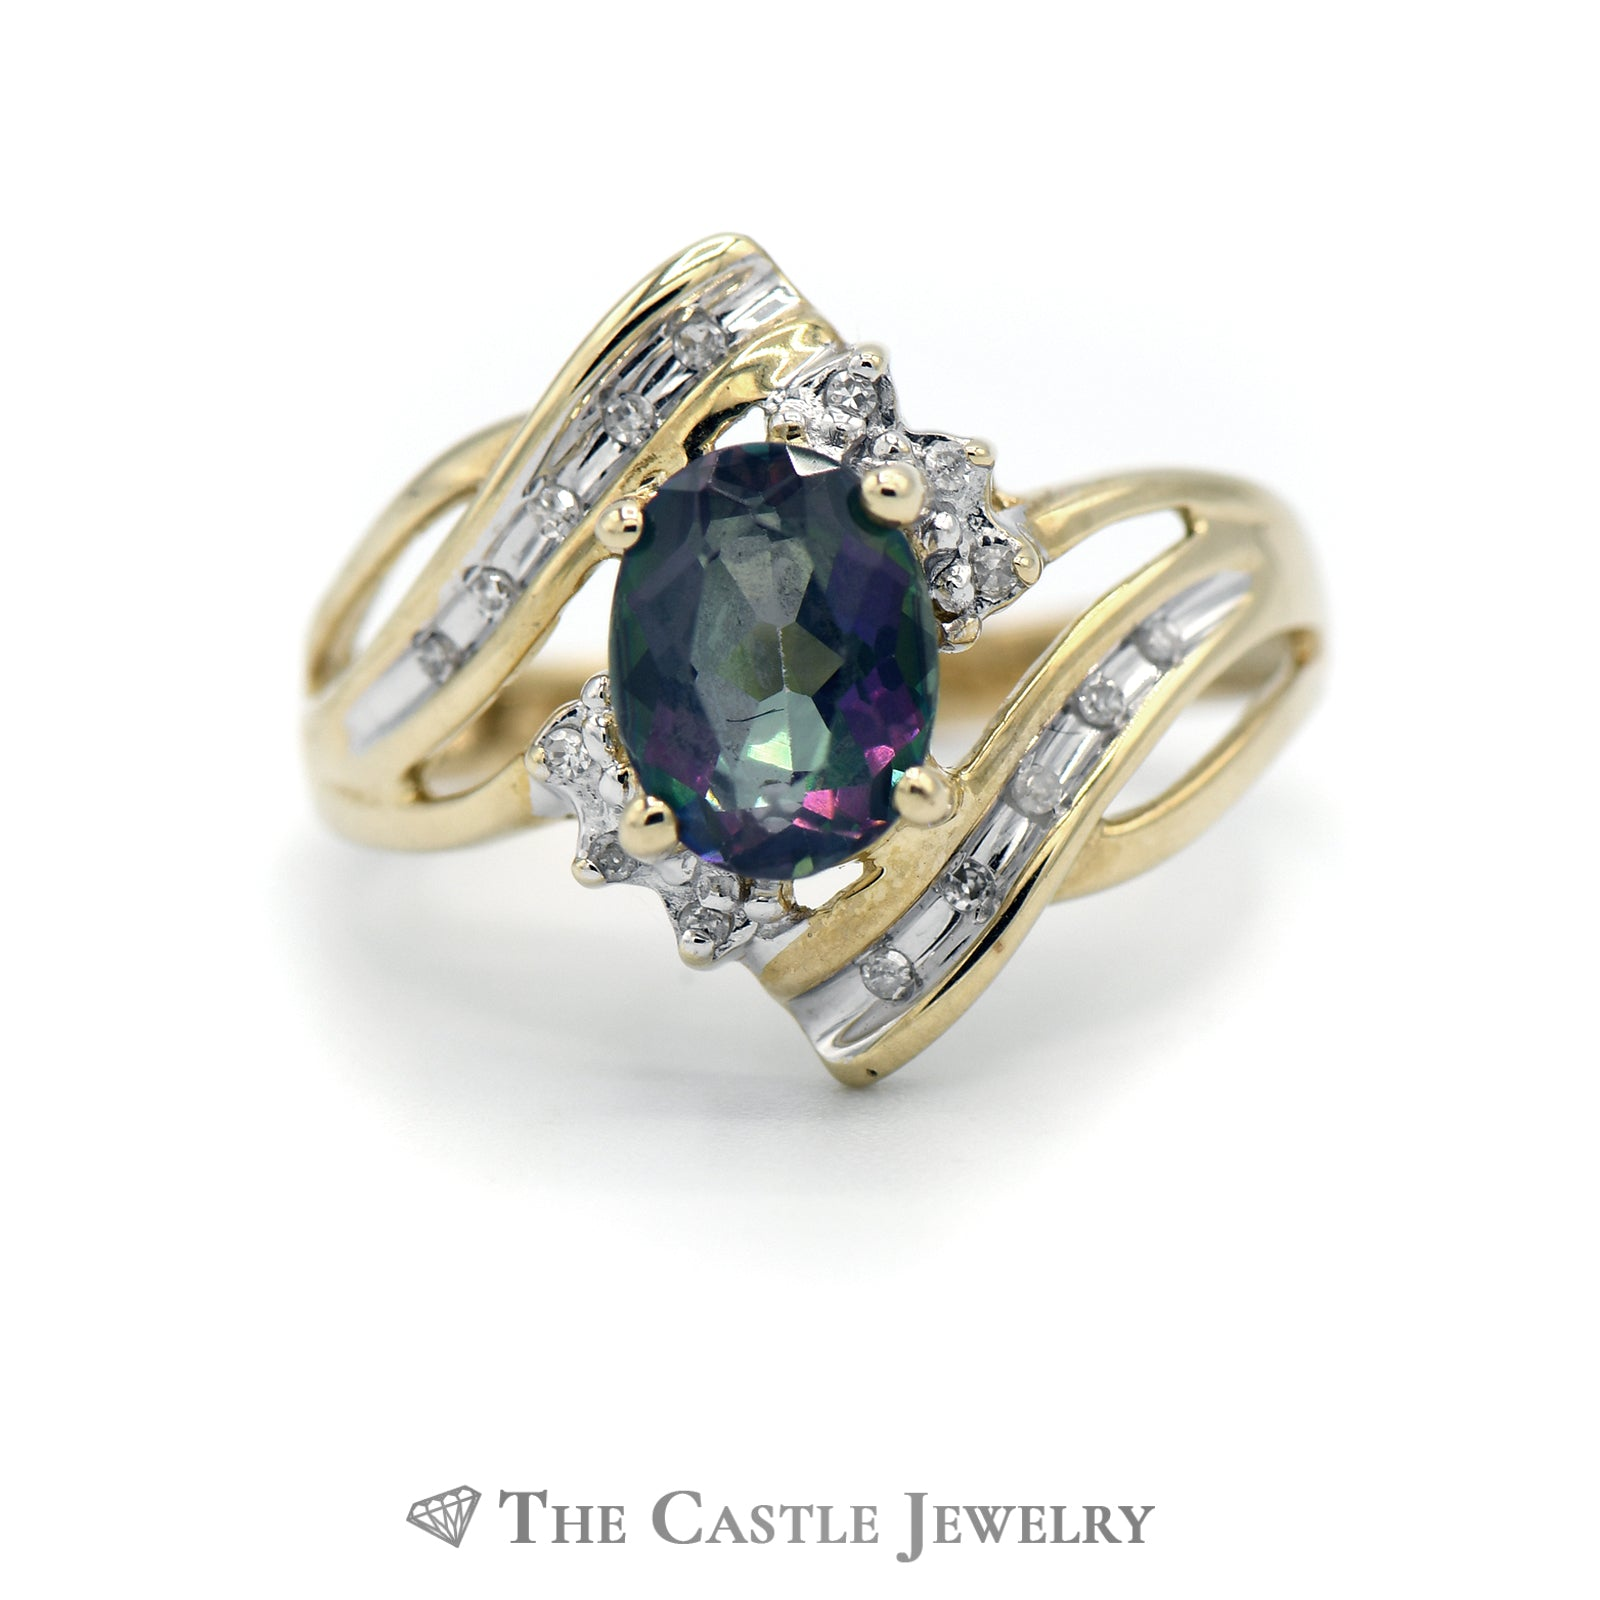 Oval Cut Mystic Topaz Ring with Diamond Accents in 10k Yellow Gold Open Bypass Mounting